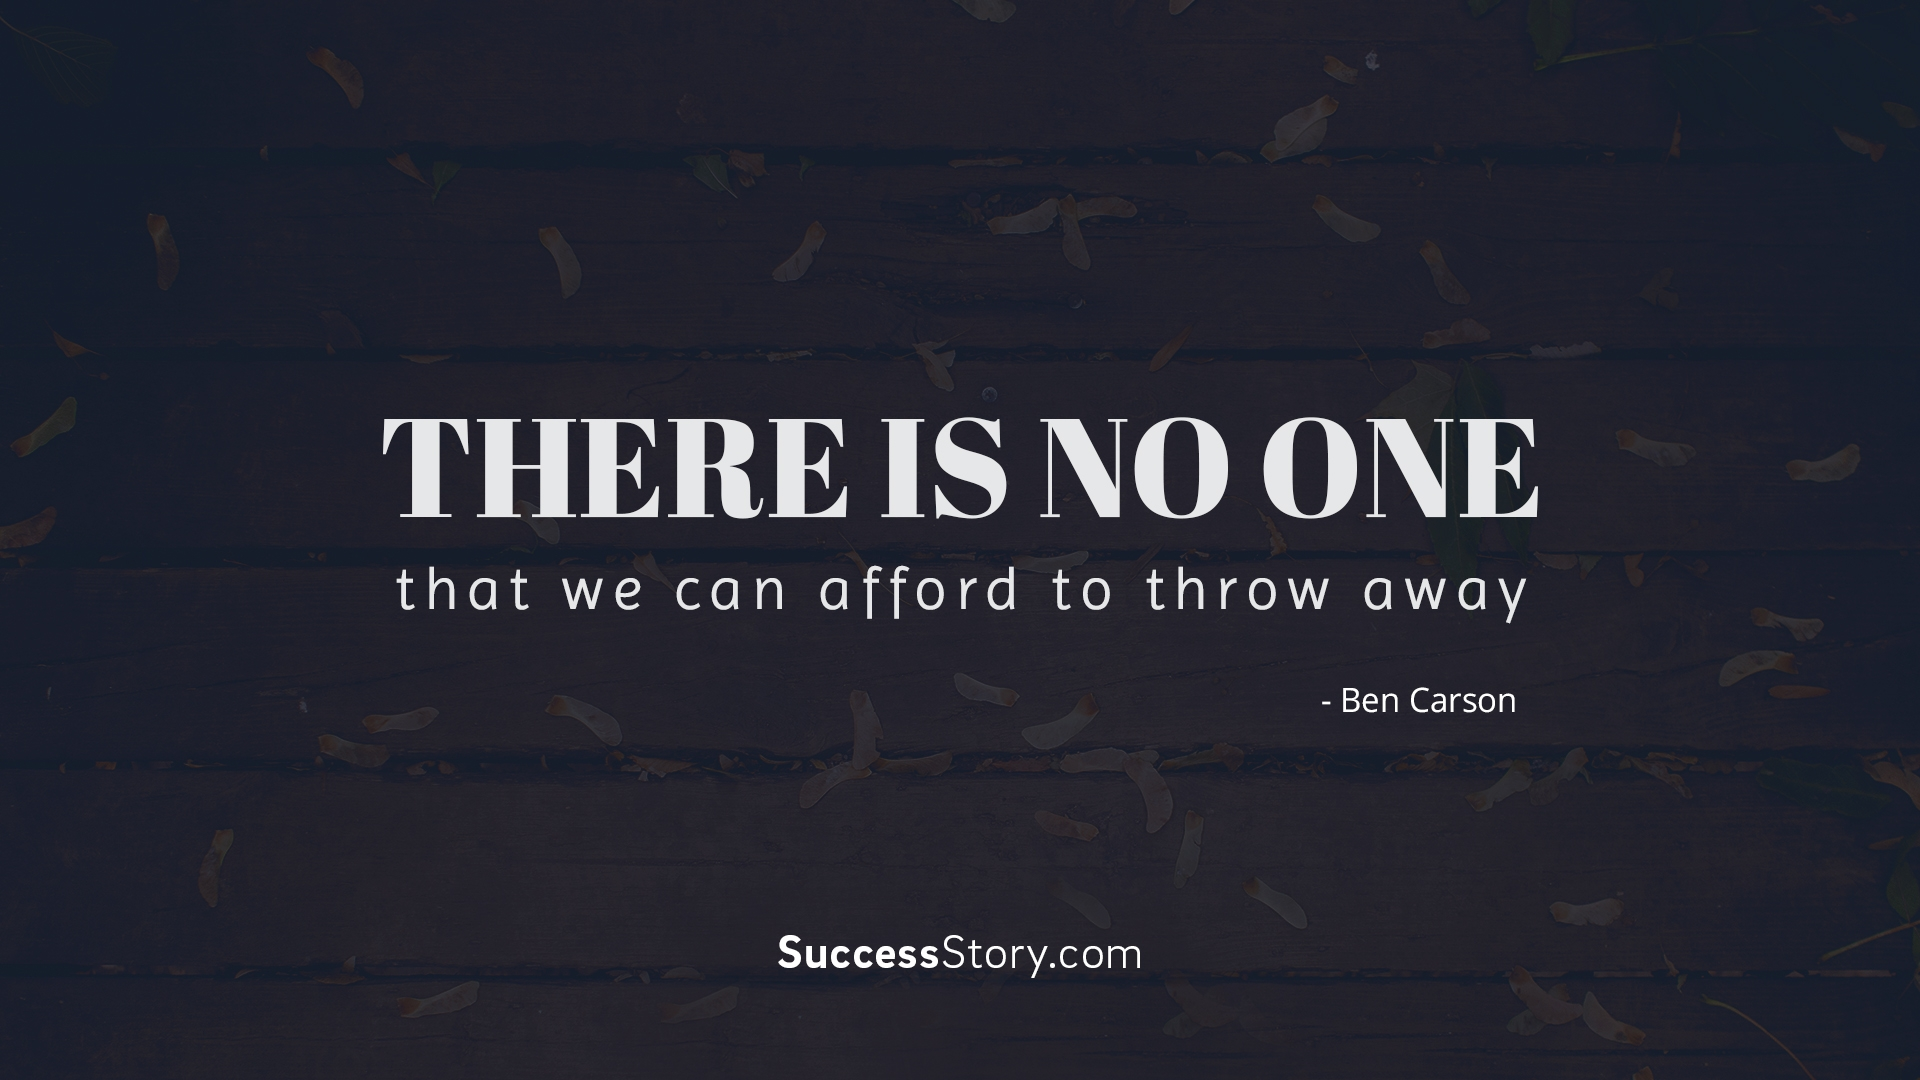 There is no one that we can afford to throw away